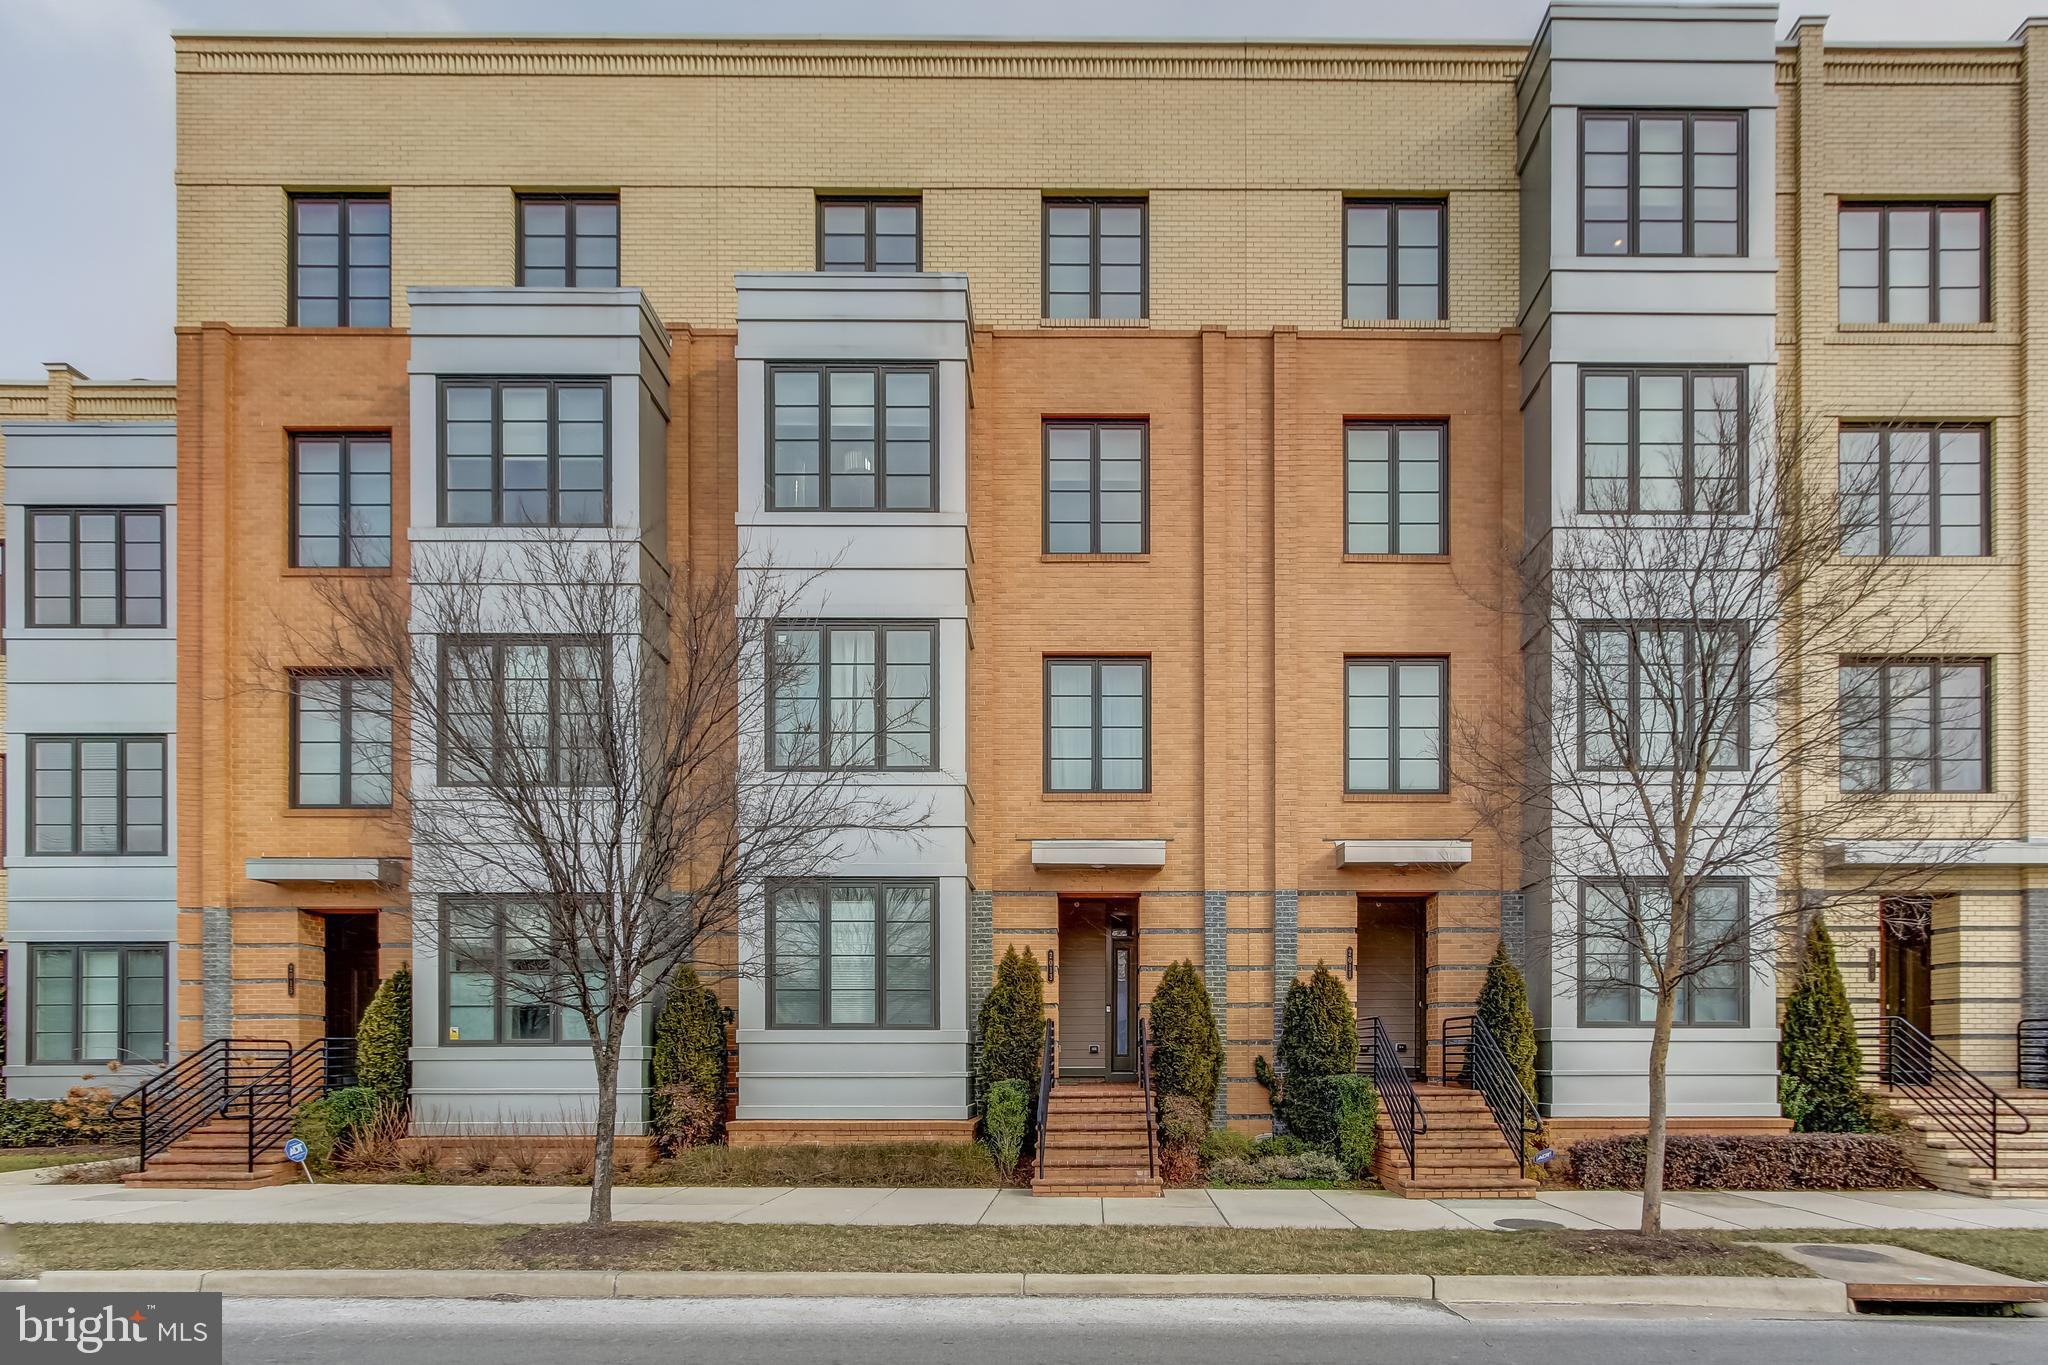 Spectacular 3 bed/2.5 bath in Potomac Yards. Top of the line new construction built in 2014. Upgraded appliances, custom built-ins, water filtration system, ActivTek Plus - Whole House Air Scrubber, smart thermostat and lighting, too many upgrades to name them all. Tons of natural light, great balcony, one car garage plus driveway. Lives large and comfortable with an open and airy feel. All of this just steps to Amazon HQ2 site, National Airport, Del Ray, Old Town, and Potomac Yards Shopping Center. This is a must see.